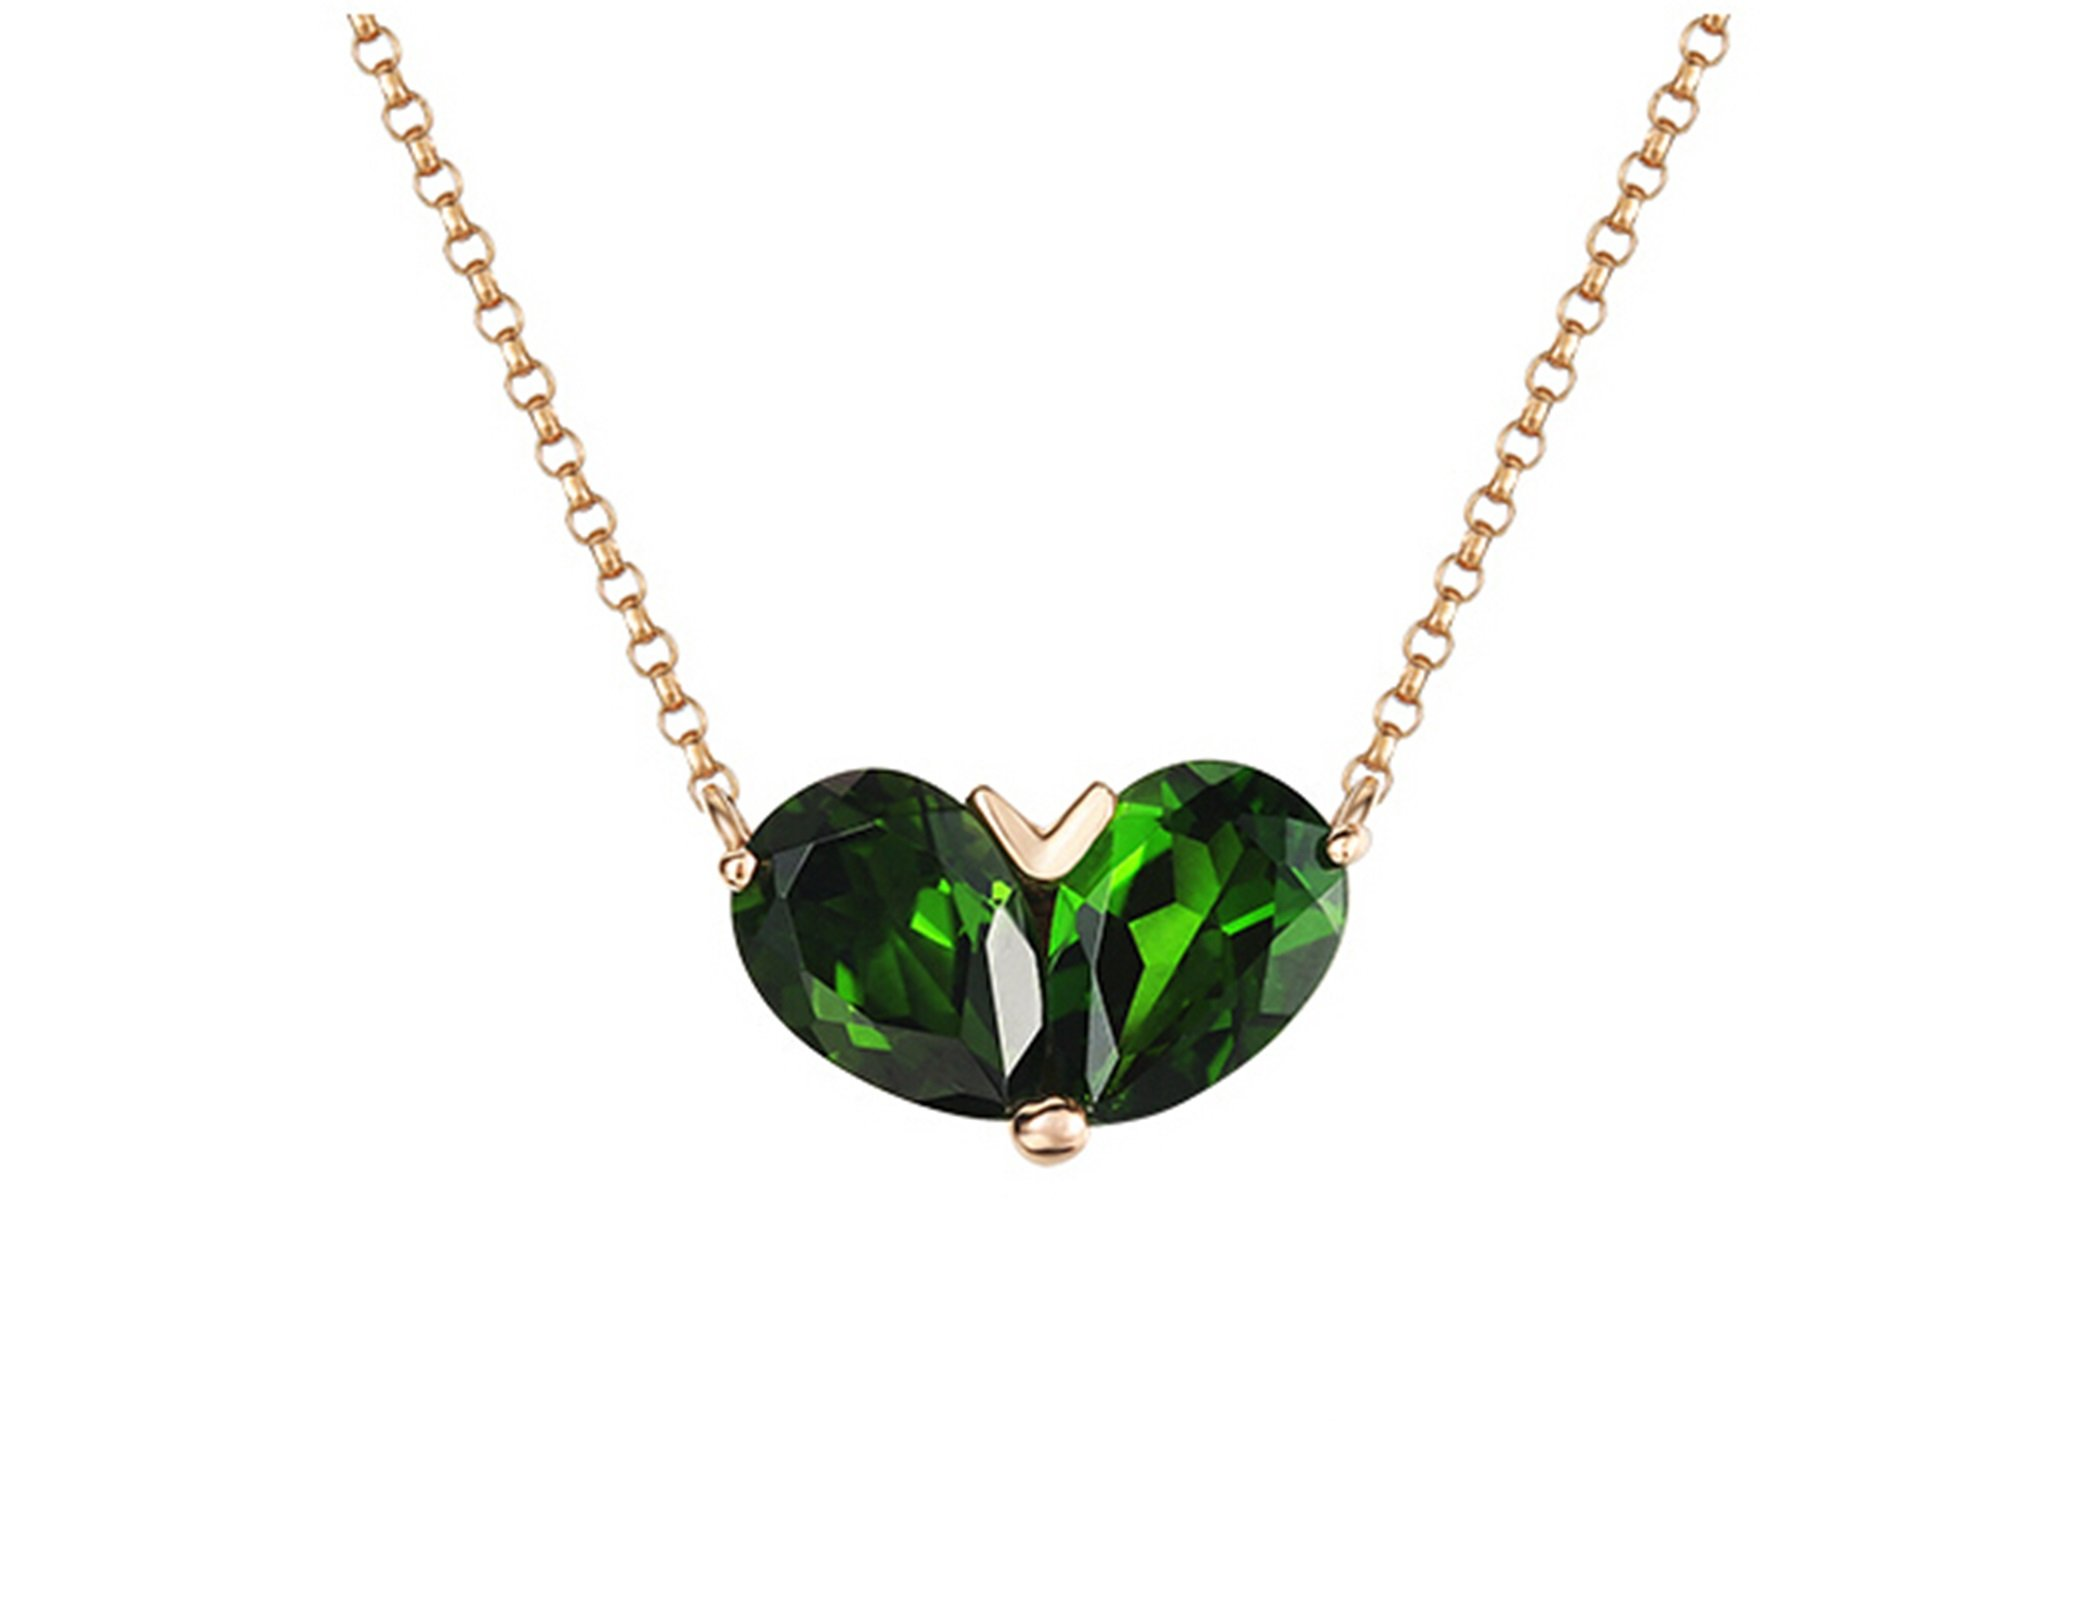 Daesar 18K Gold Necklace For Women Heart Water Drop Natural Green Tourmaline Necklace Chain Length: 40CM